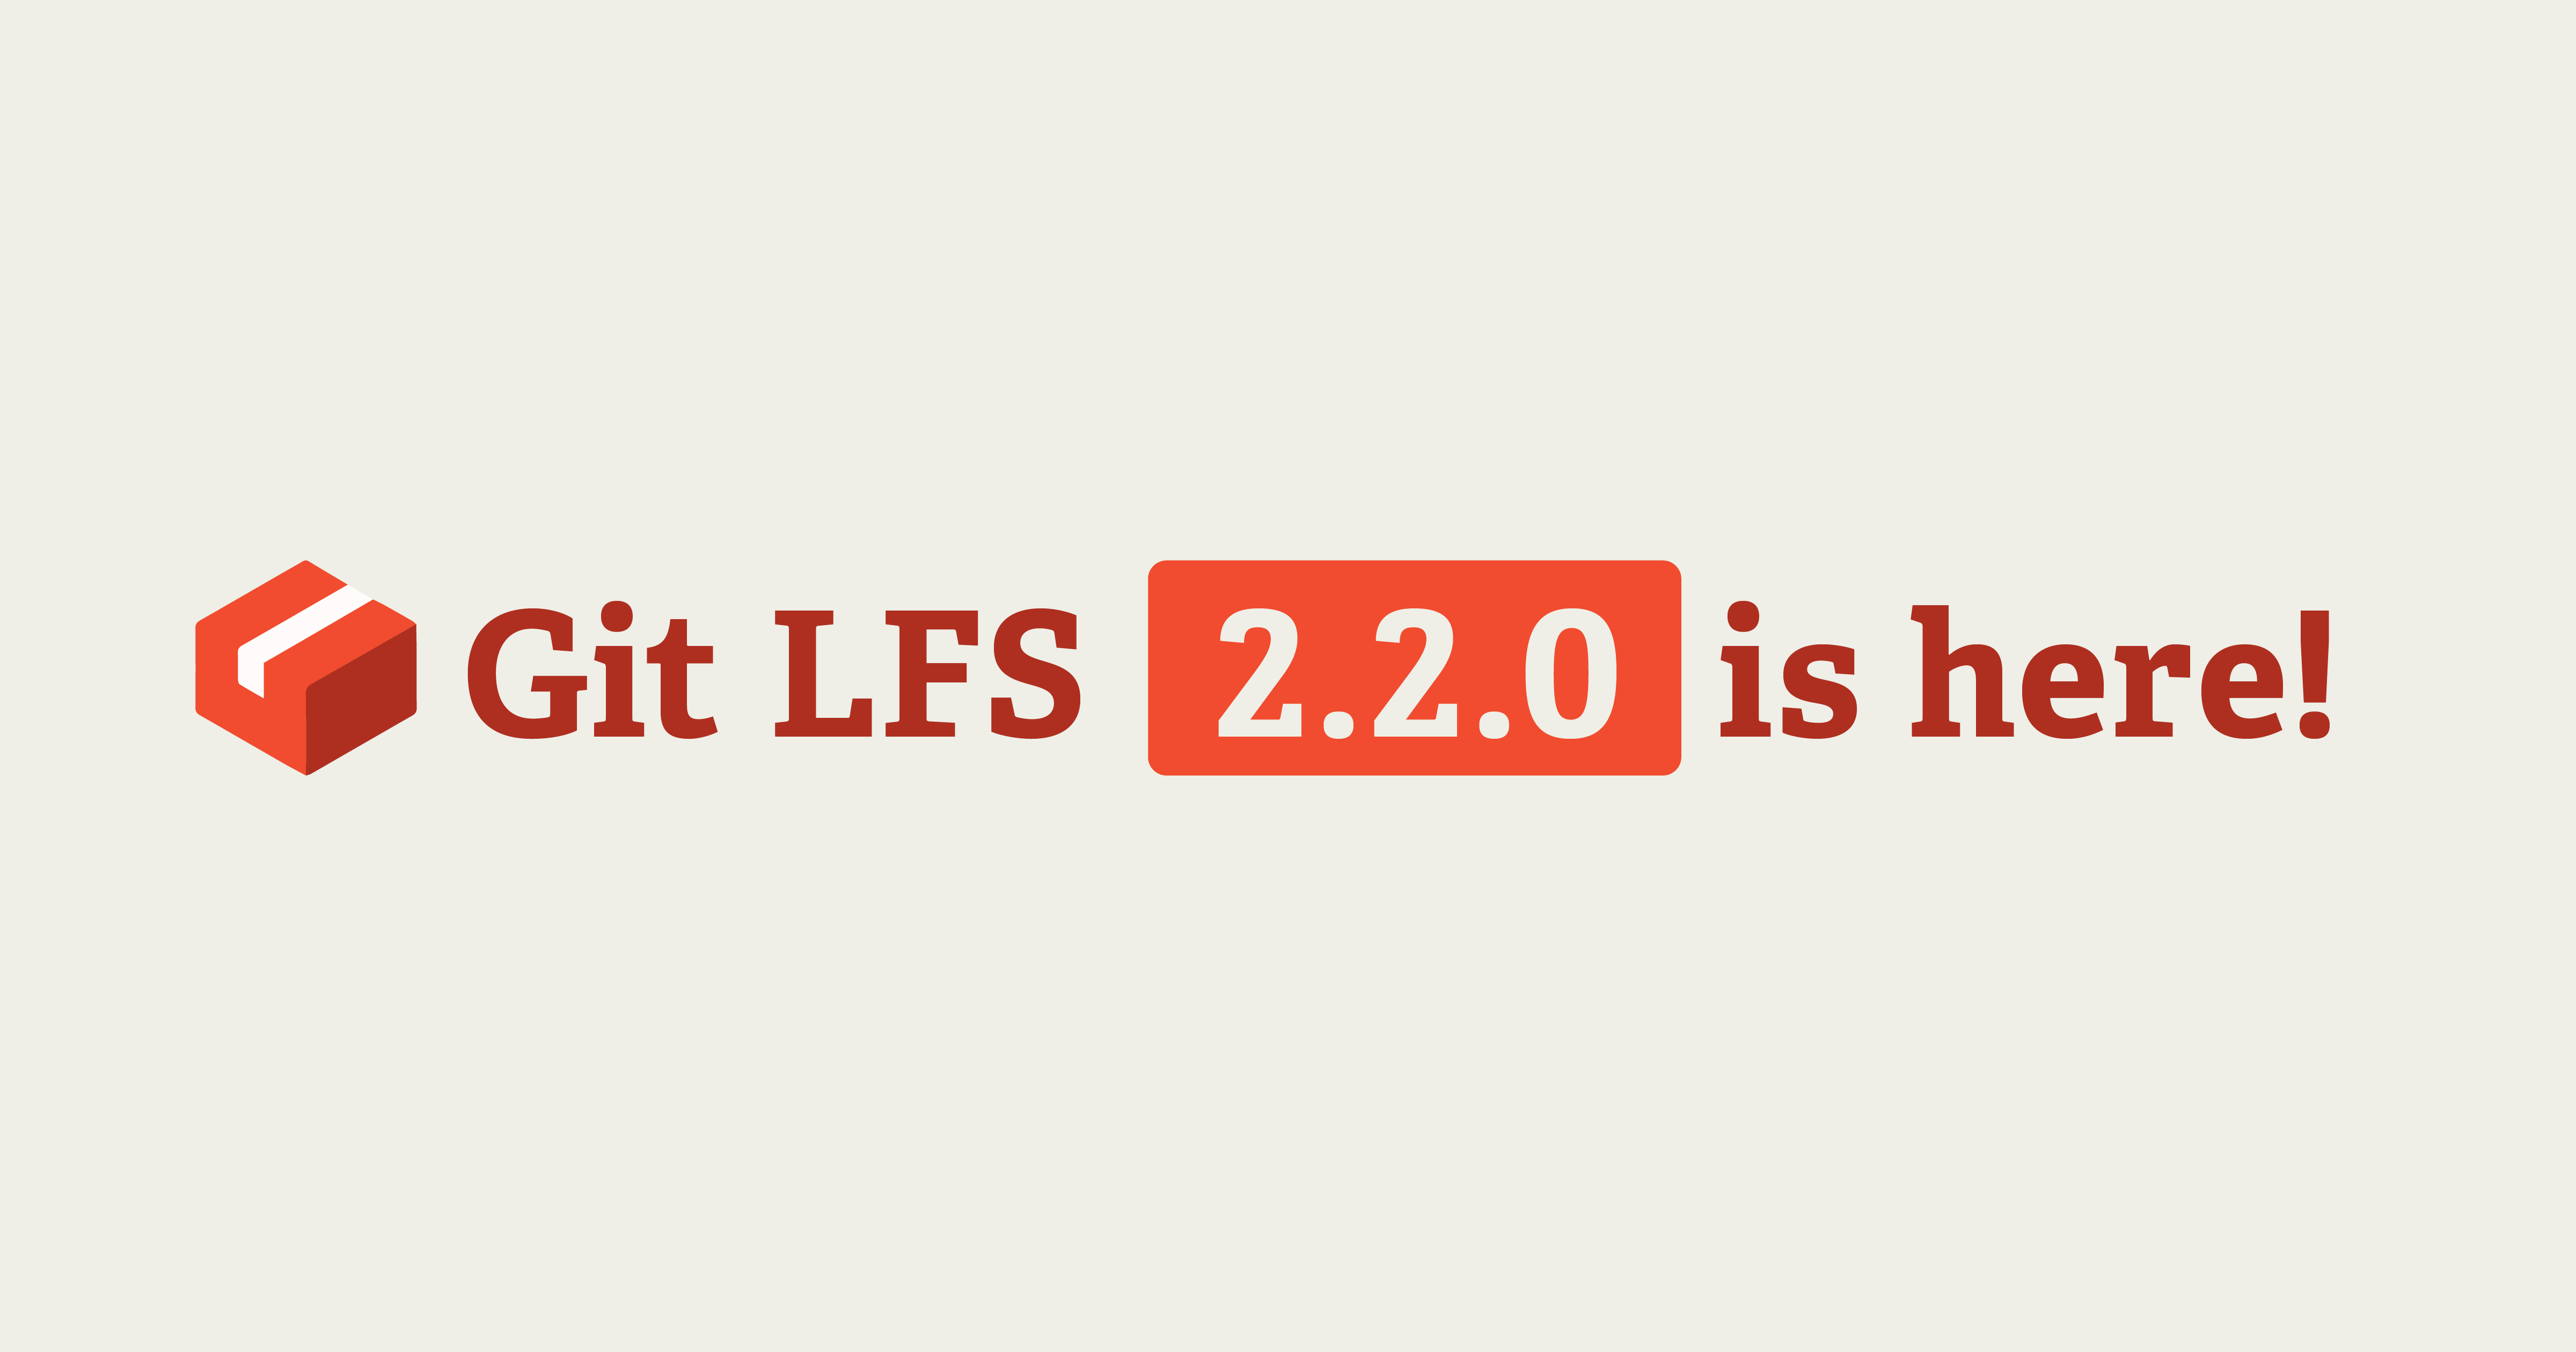 Git LFS v2.2.0 is now available